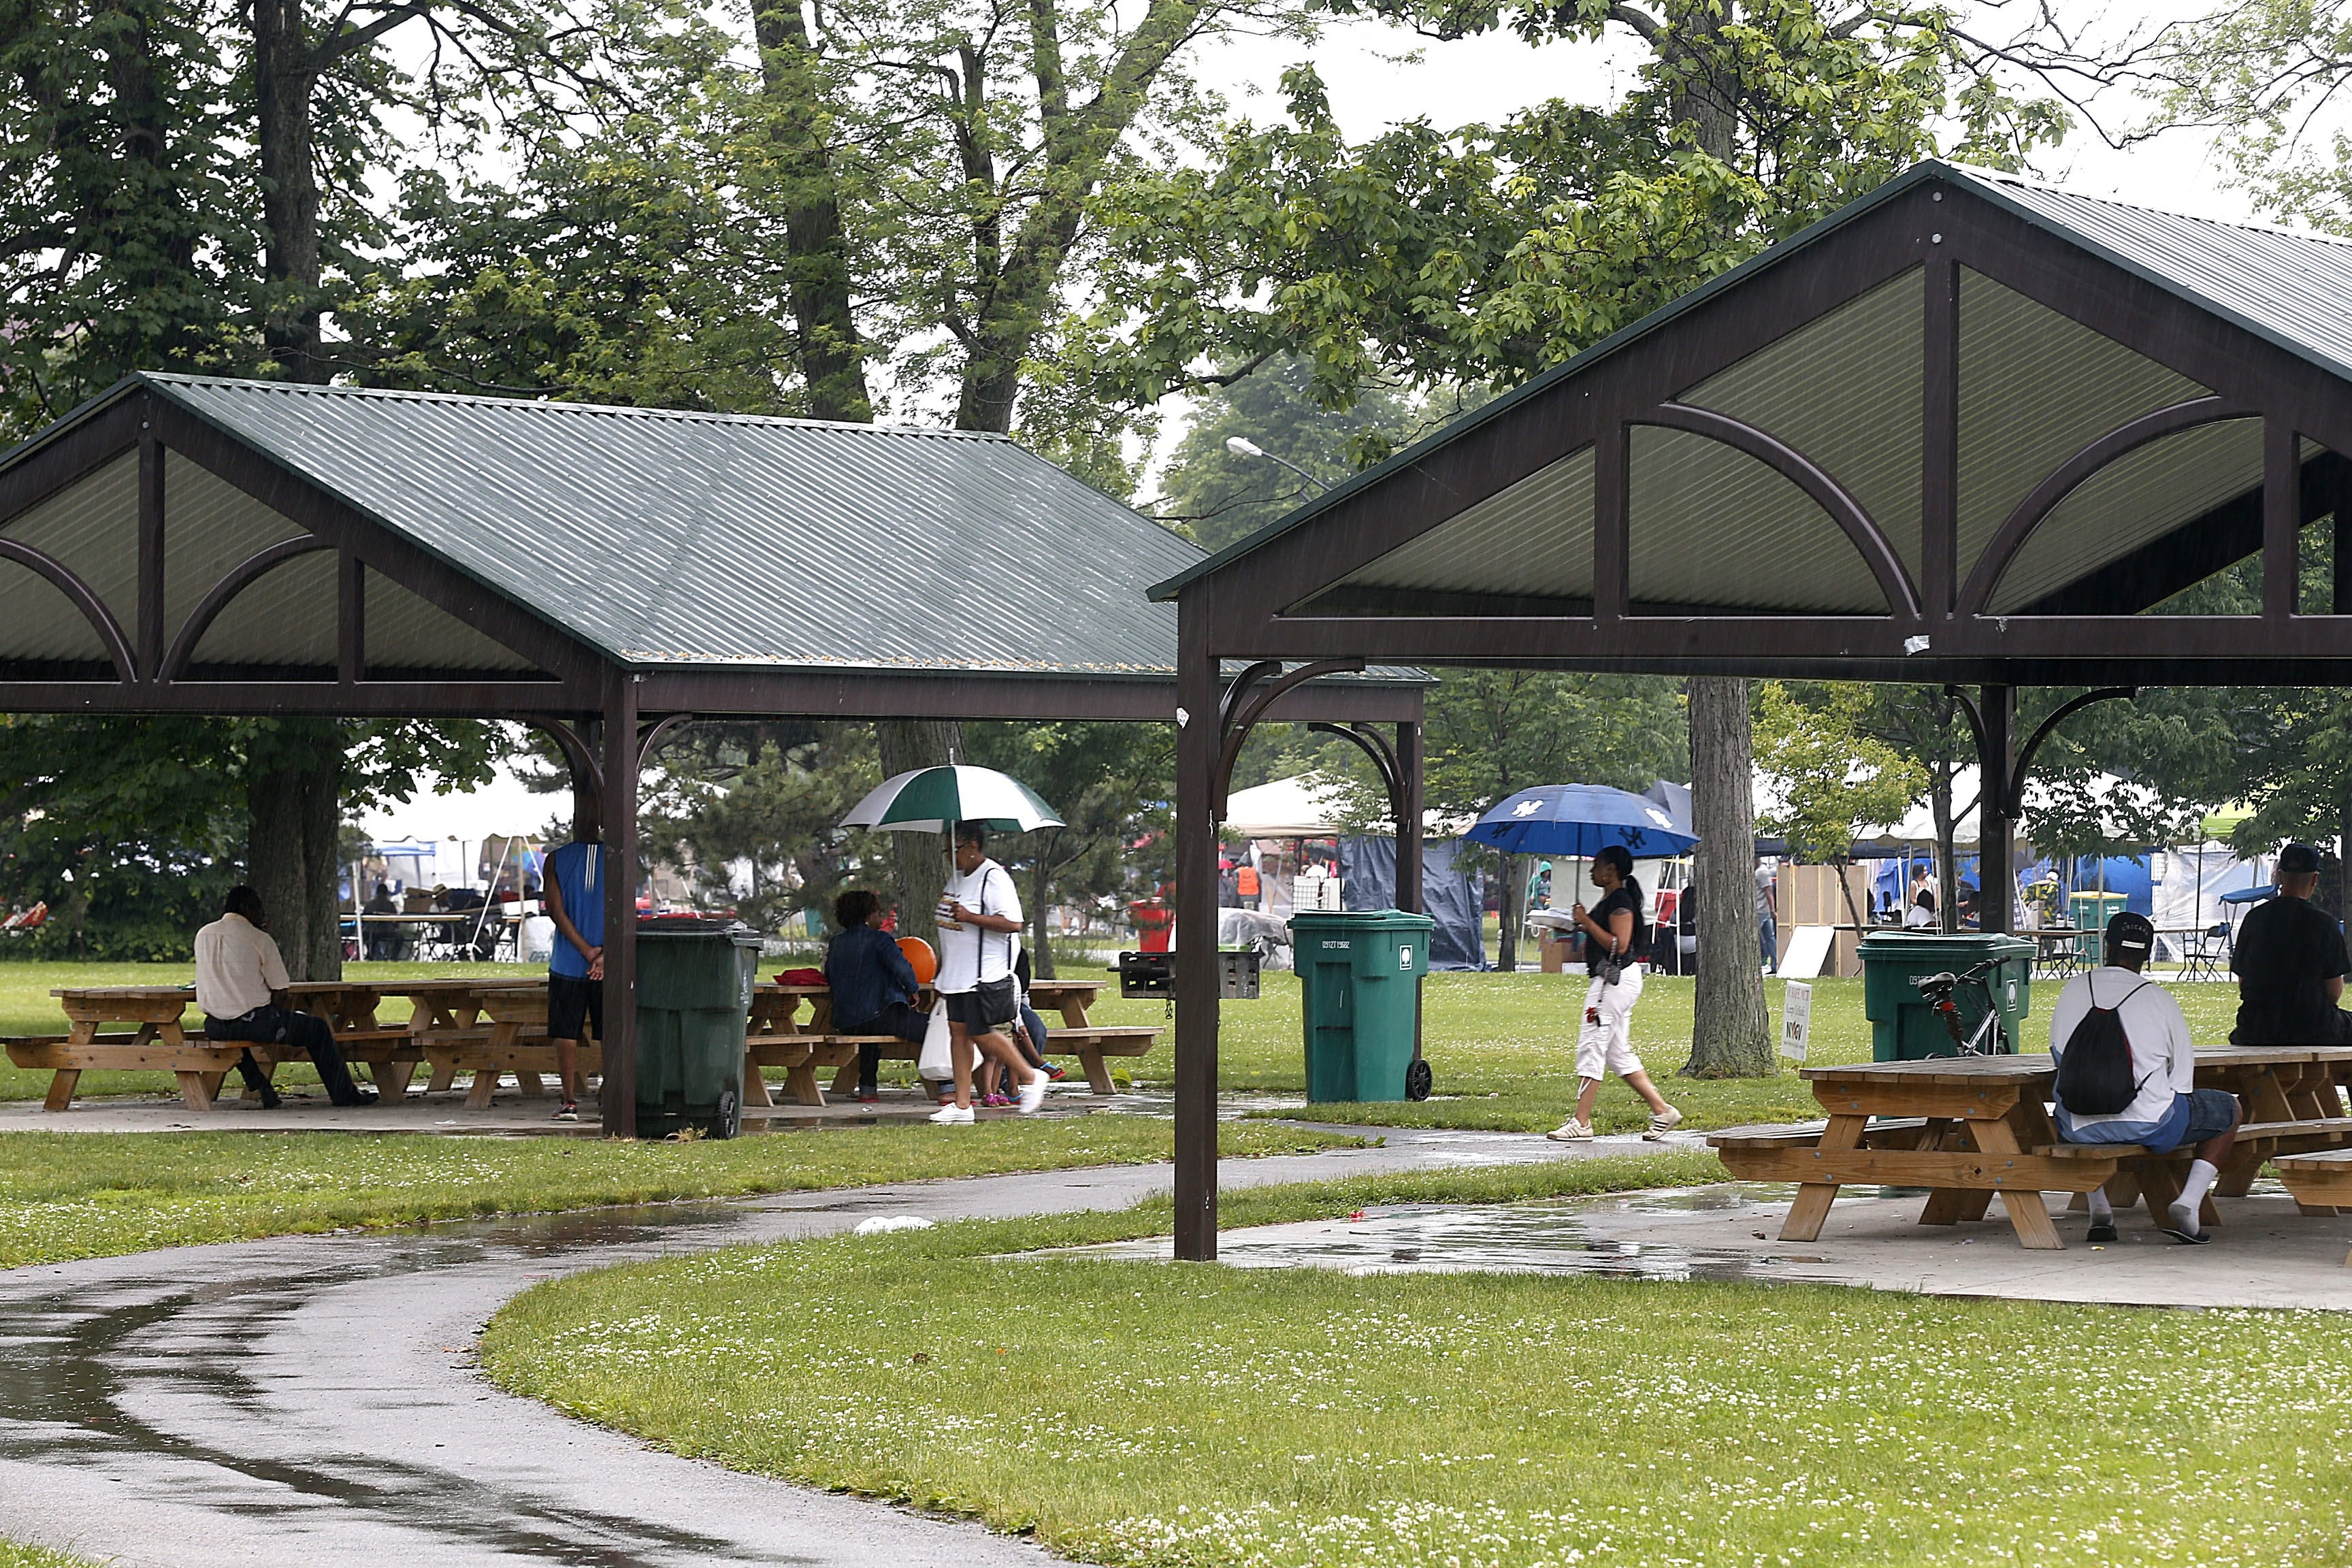 New shelters at MLK Jr. Park come in handy during a rainy Juneteenth Festival. The shelters were part of a $2.7 million upgrade to the park, which included a playground. $200,000 basketball courts were also added, and were christened by the Girls Sports Foundation.